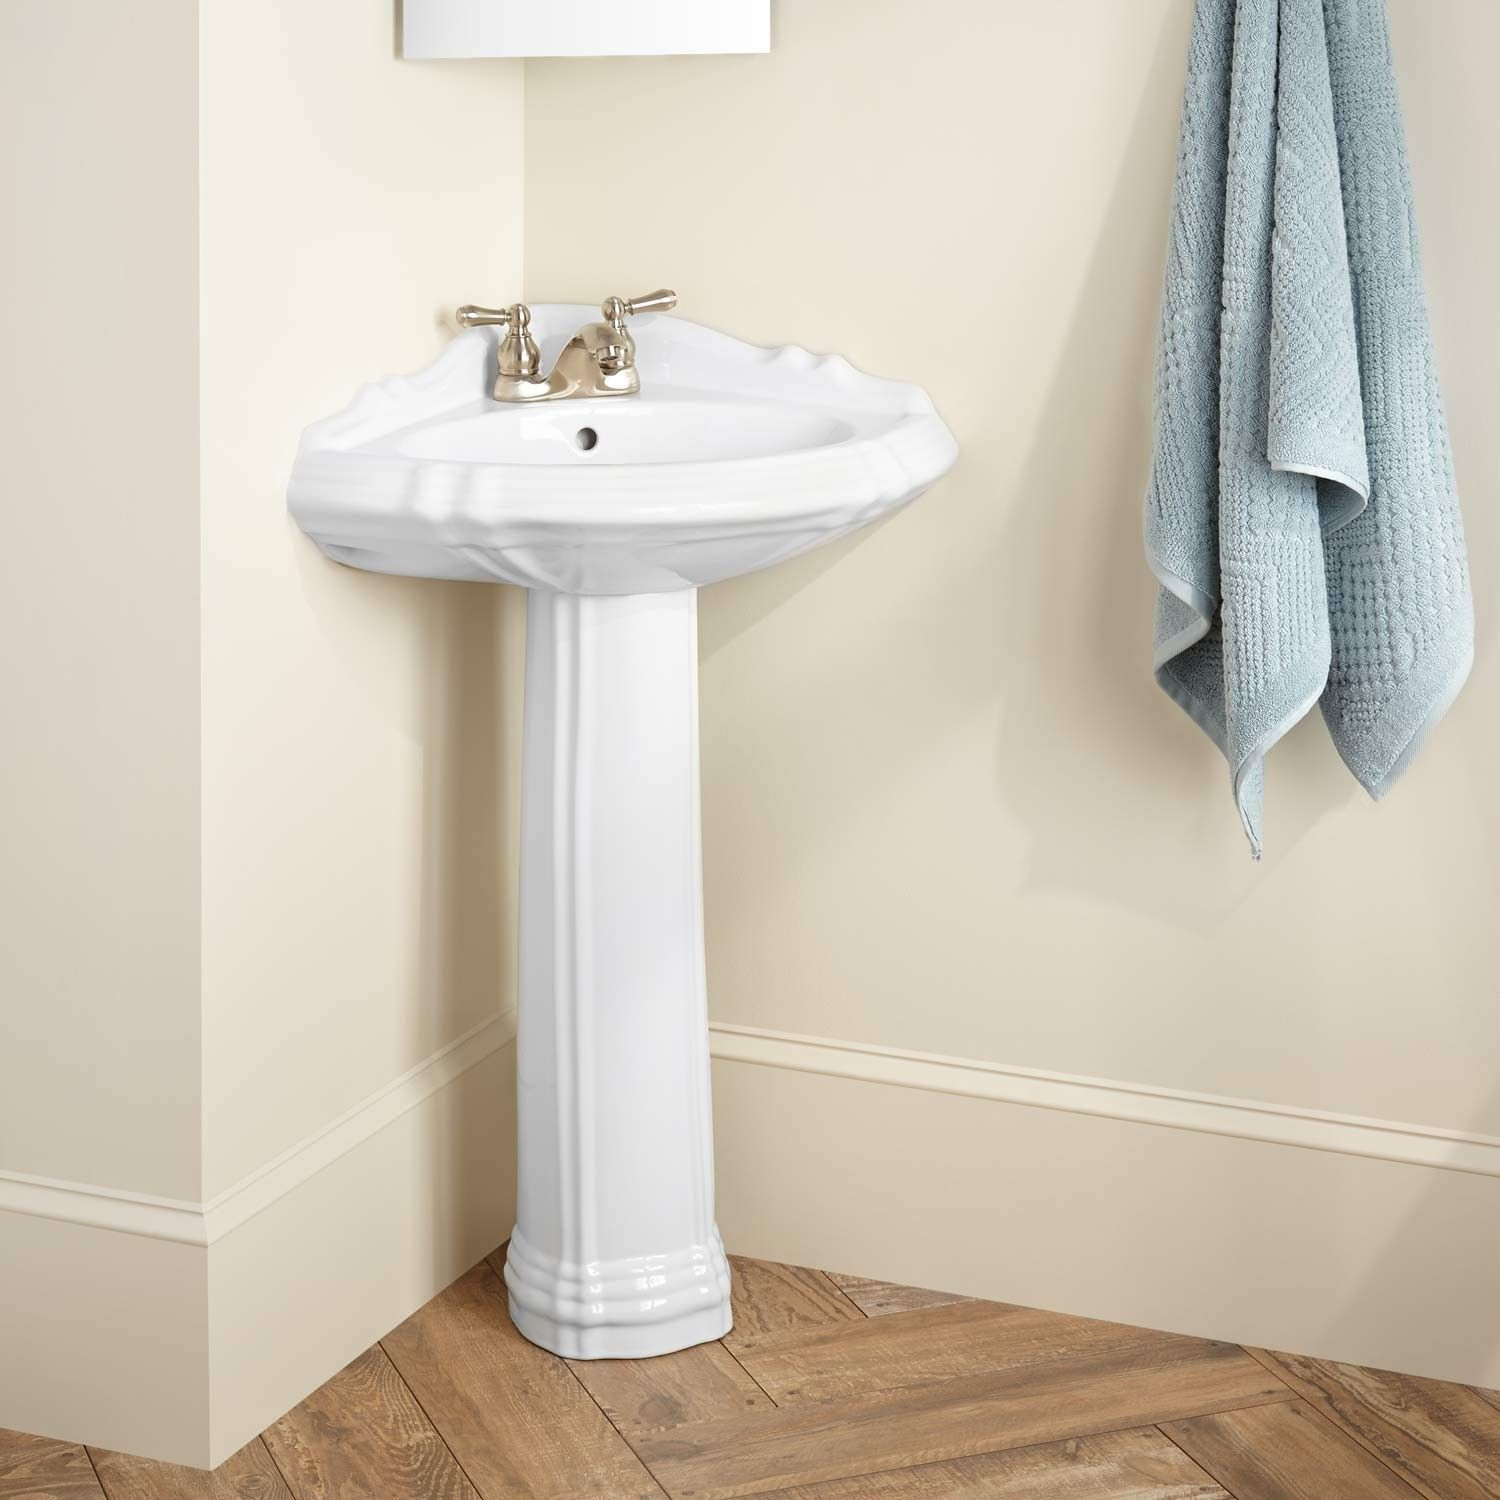 "27"" Regent Corner Porcelain Pedestal Sink  4"" Centers  Biscuit Gorgeous Corner Sink For Small Bathroom Design Ideas"